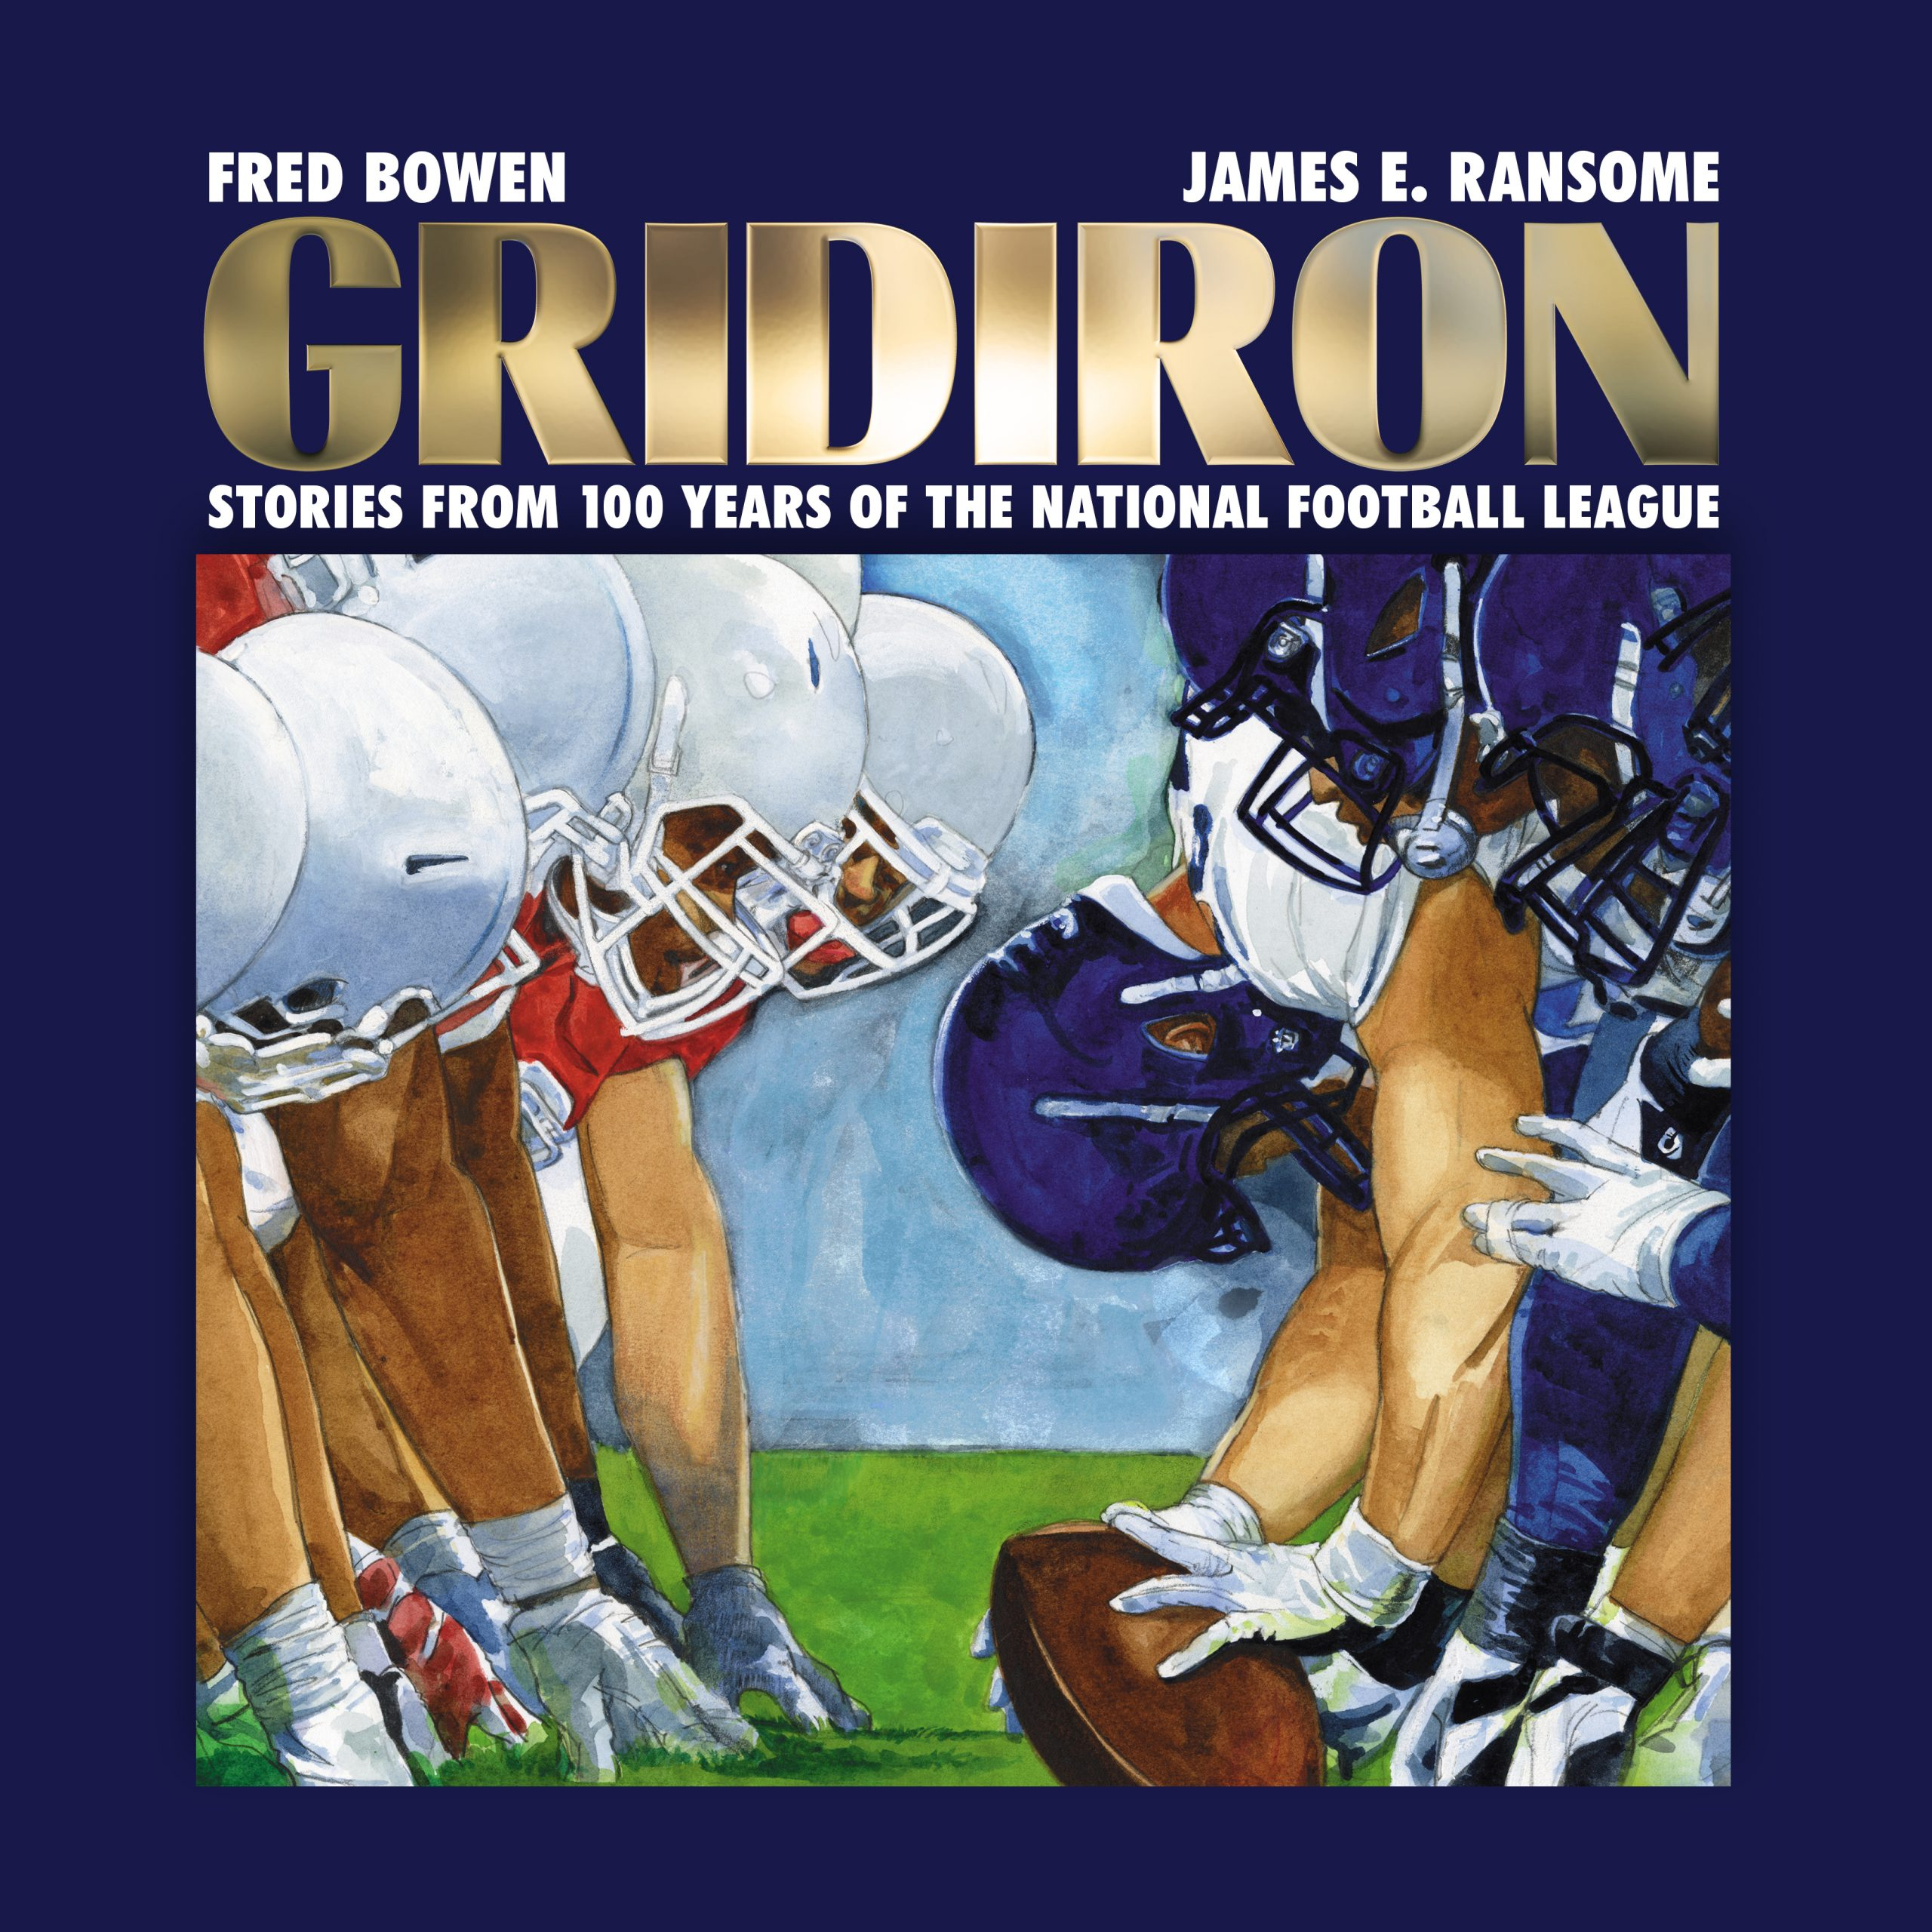 Interview with Fred Bowen and James Ransome about their new book, Gridiron: Stories From 100 Years of the National Football League.